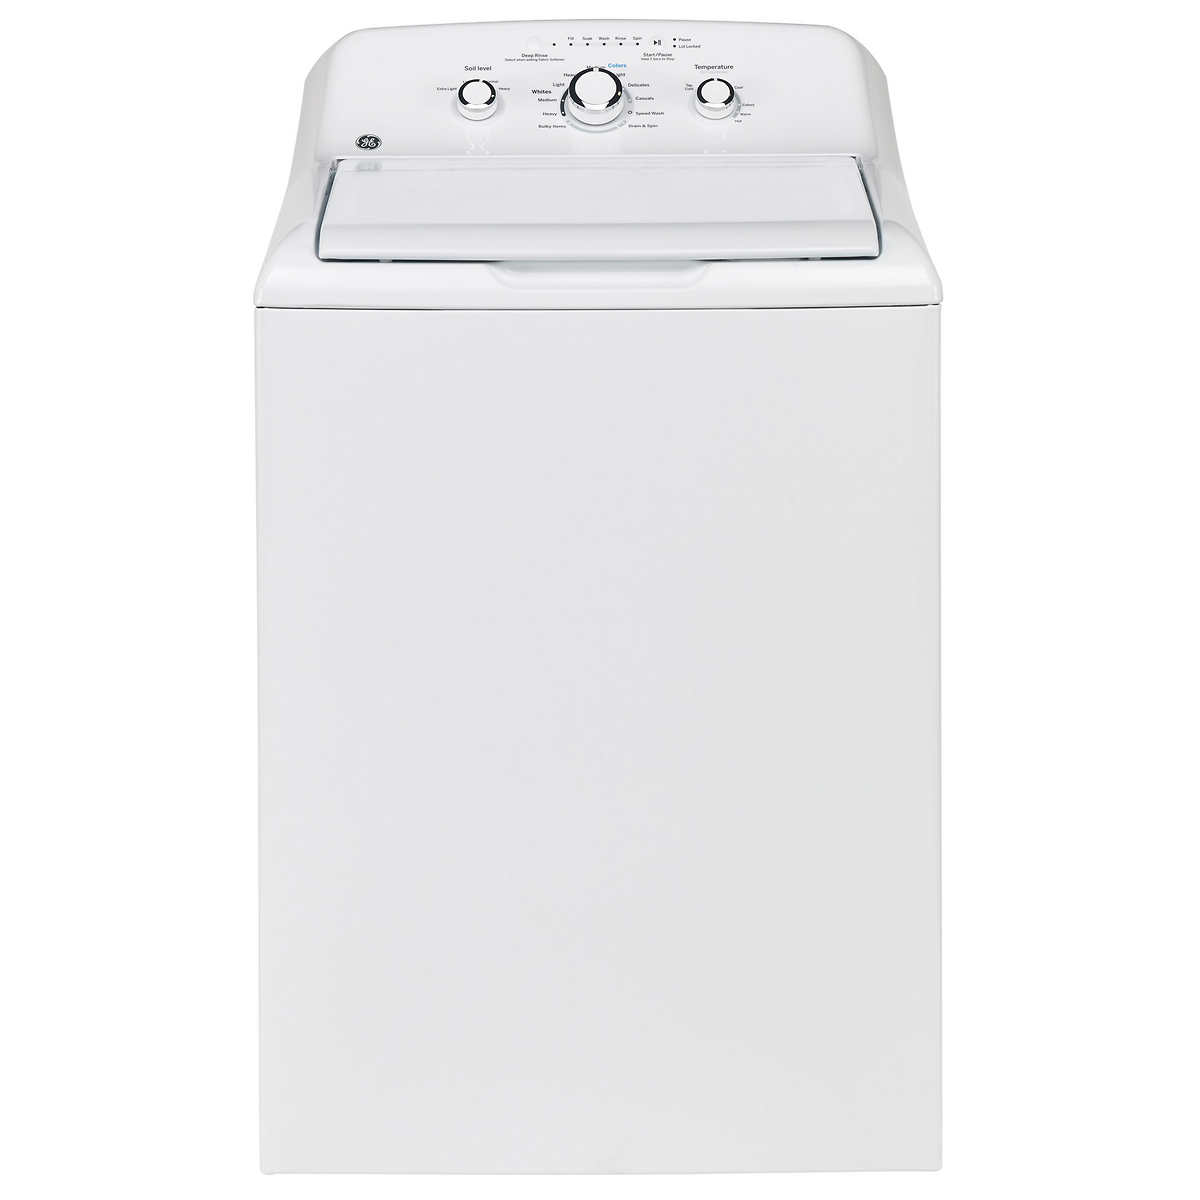 GE 4 4 cu  ft  White Top Load Washer with Stainless Steel Basket